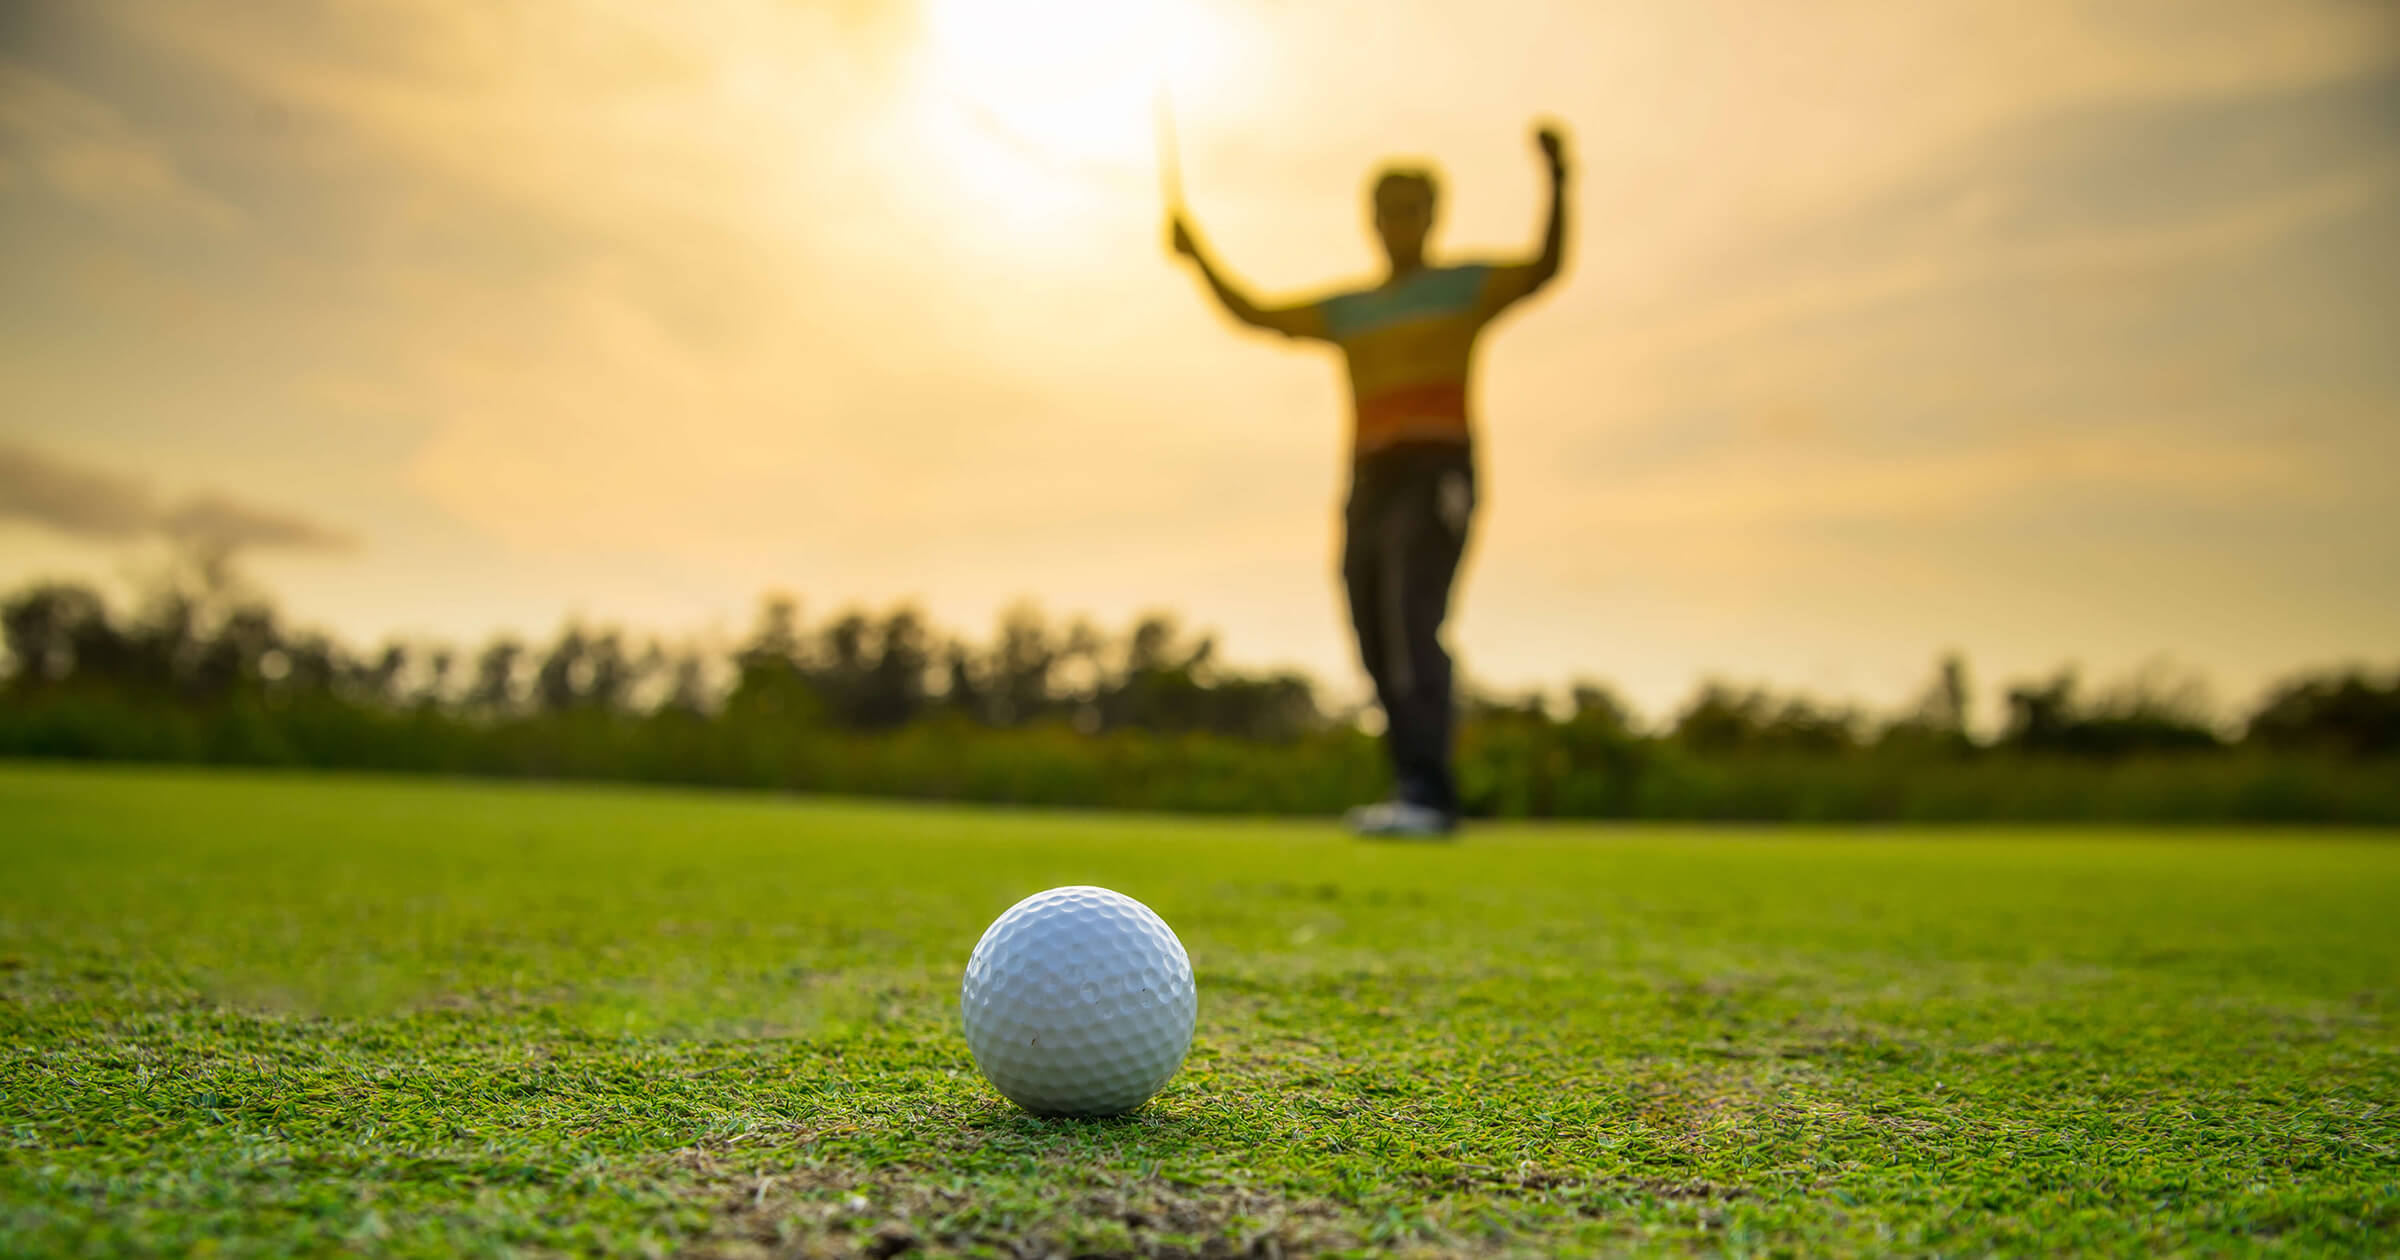 We're optimistically awaiting news that the lockdown restrictions may be eased for golf courses soon and that will mean that we're able to welcome our members back to the course again!